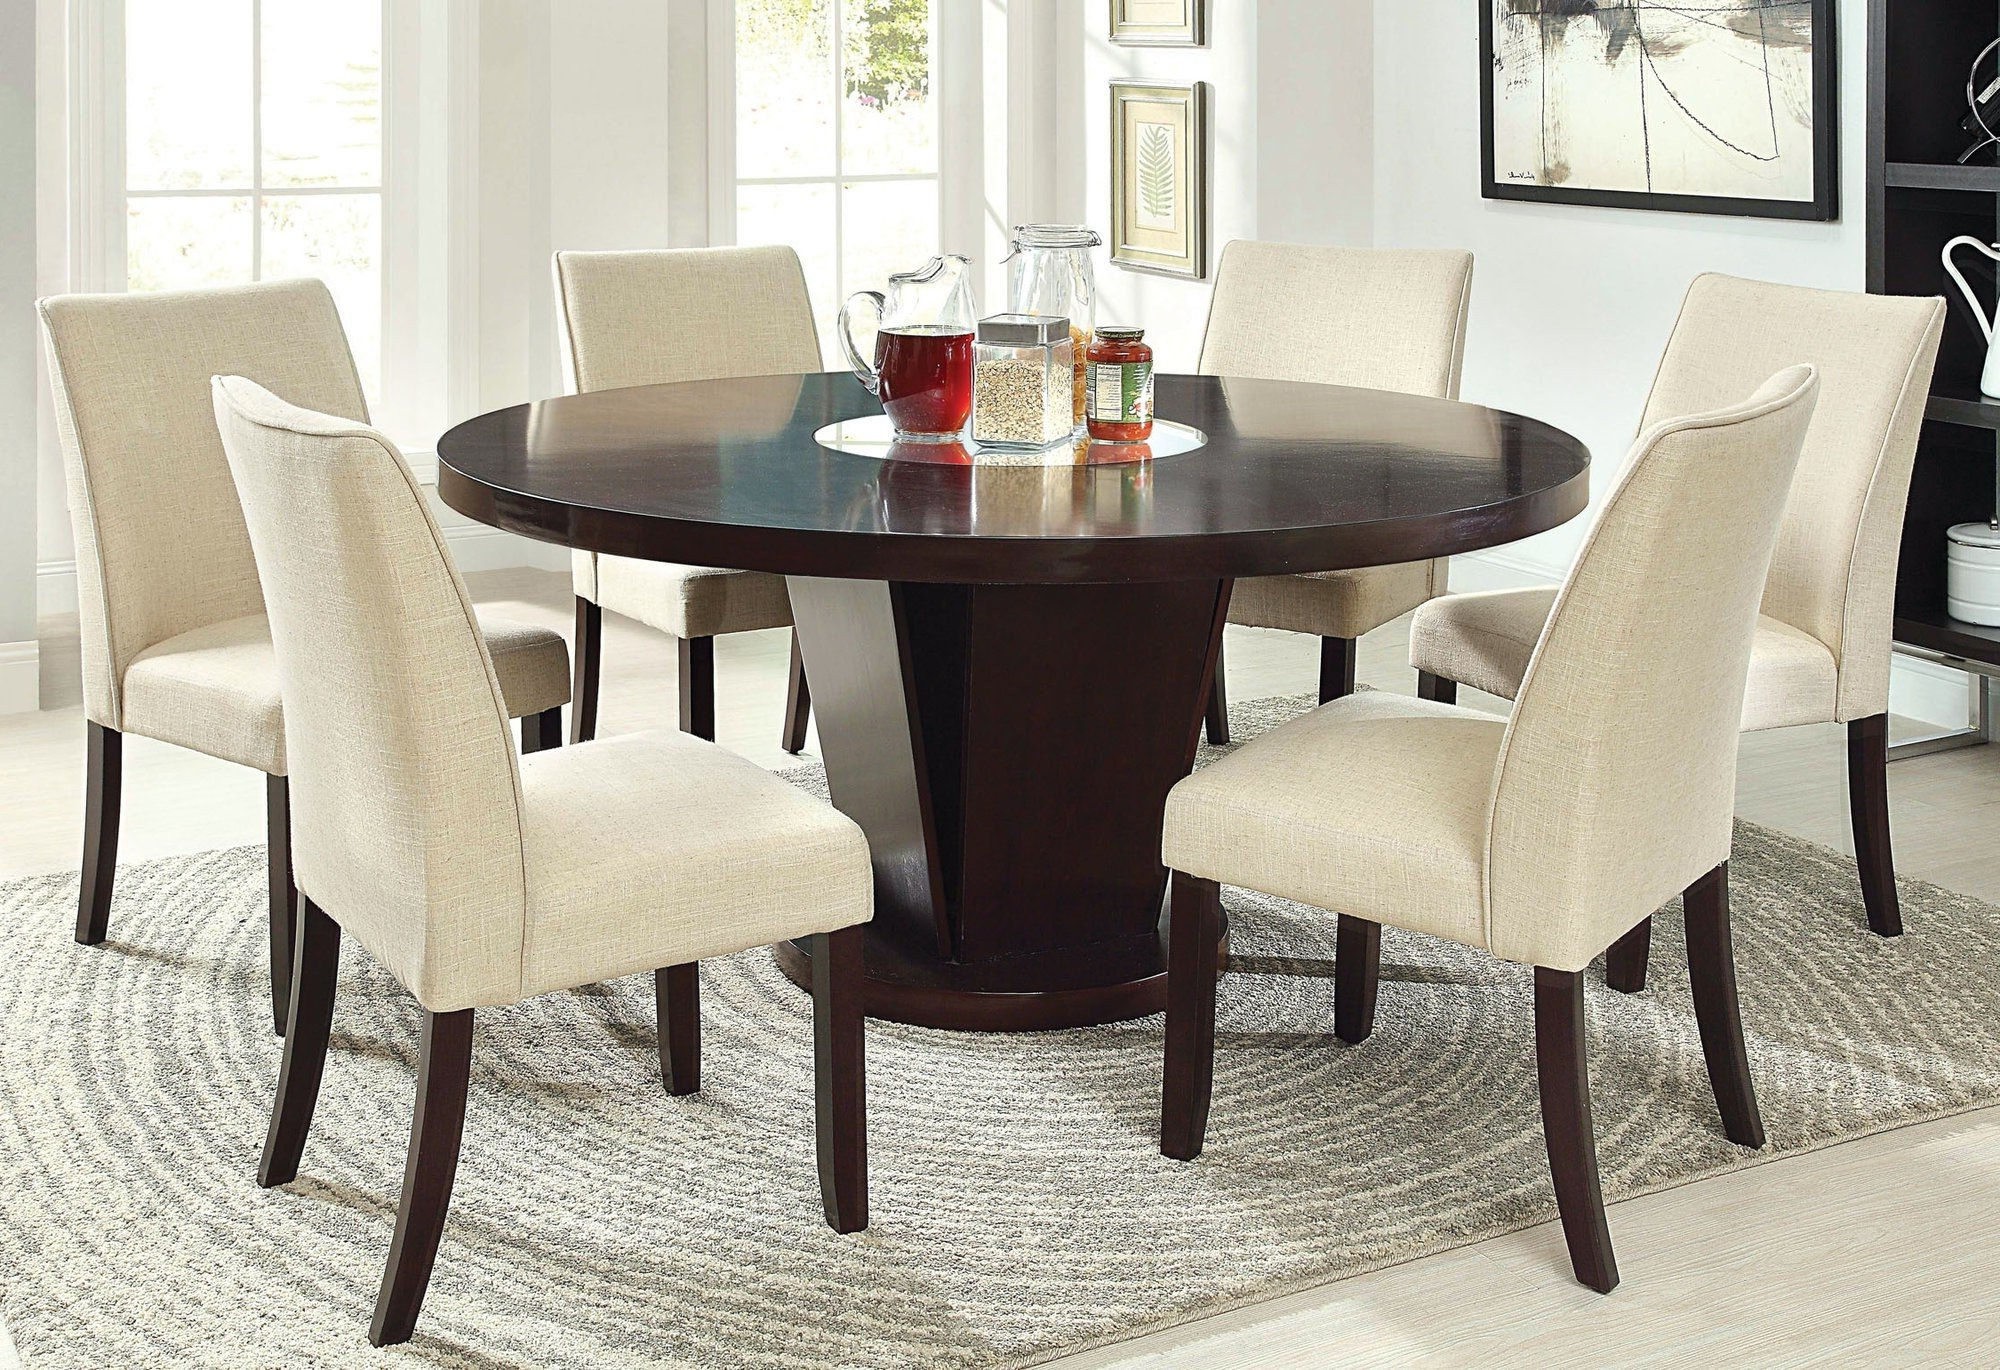 Preferred 50+ Round Dining Table For 6 You'll Love In 2020 – Visual Hunt Pertaining To Medium Elegant Dining Tables (View 17 of 30)